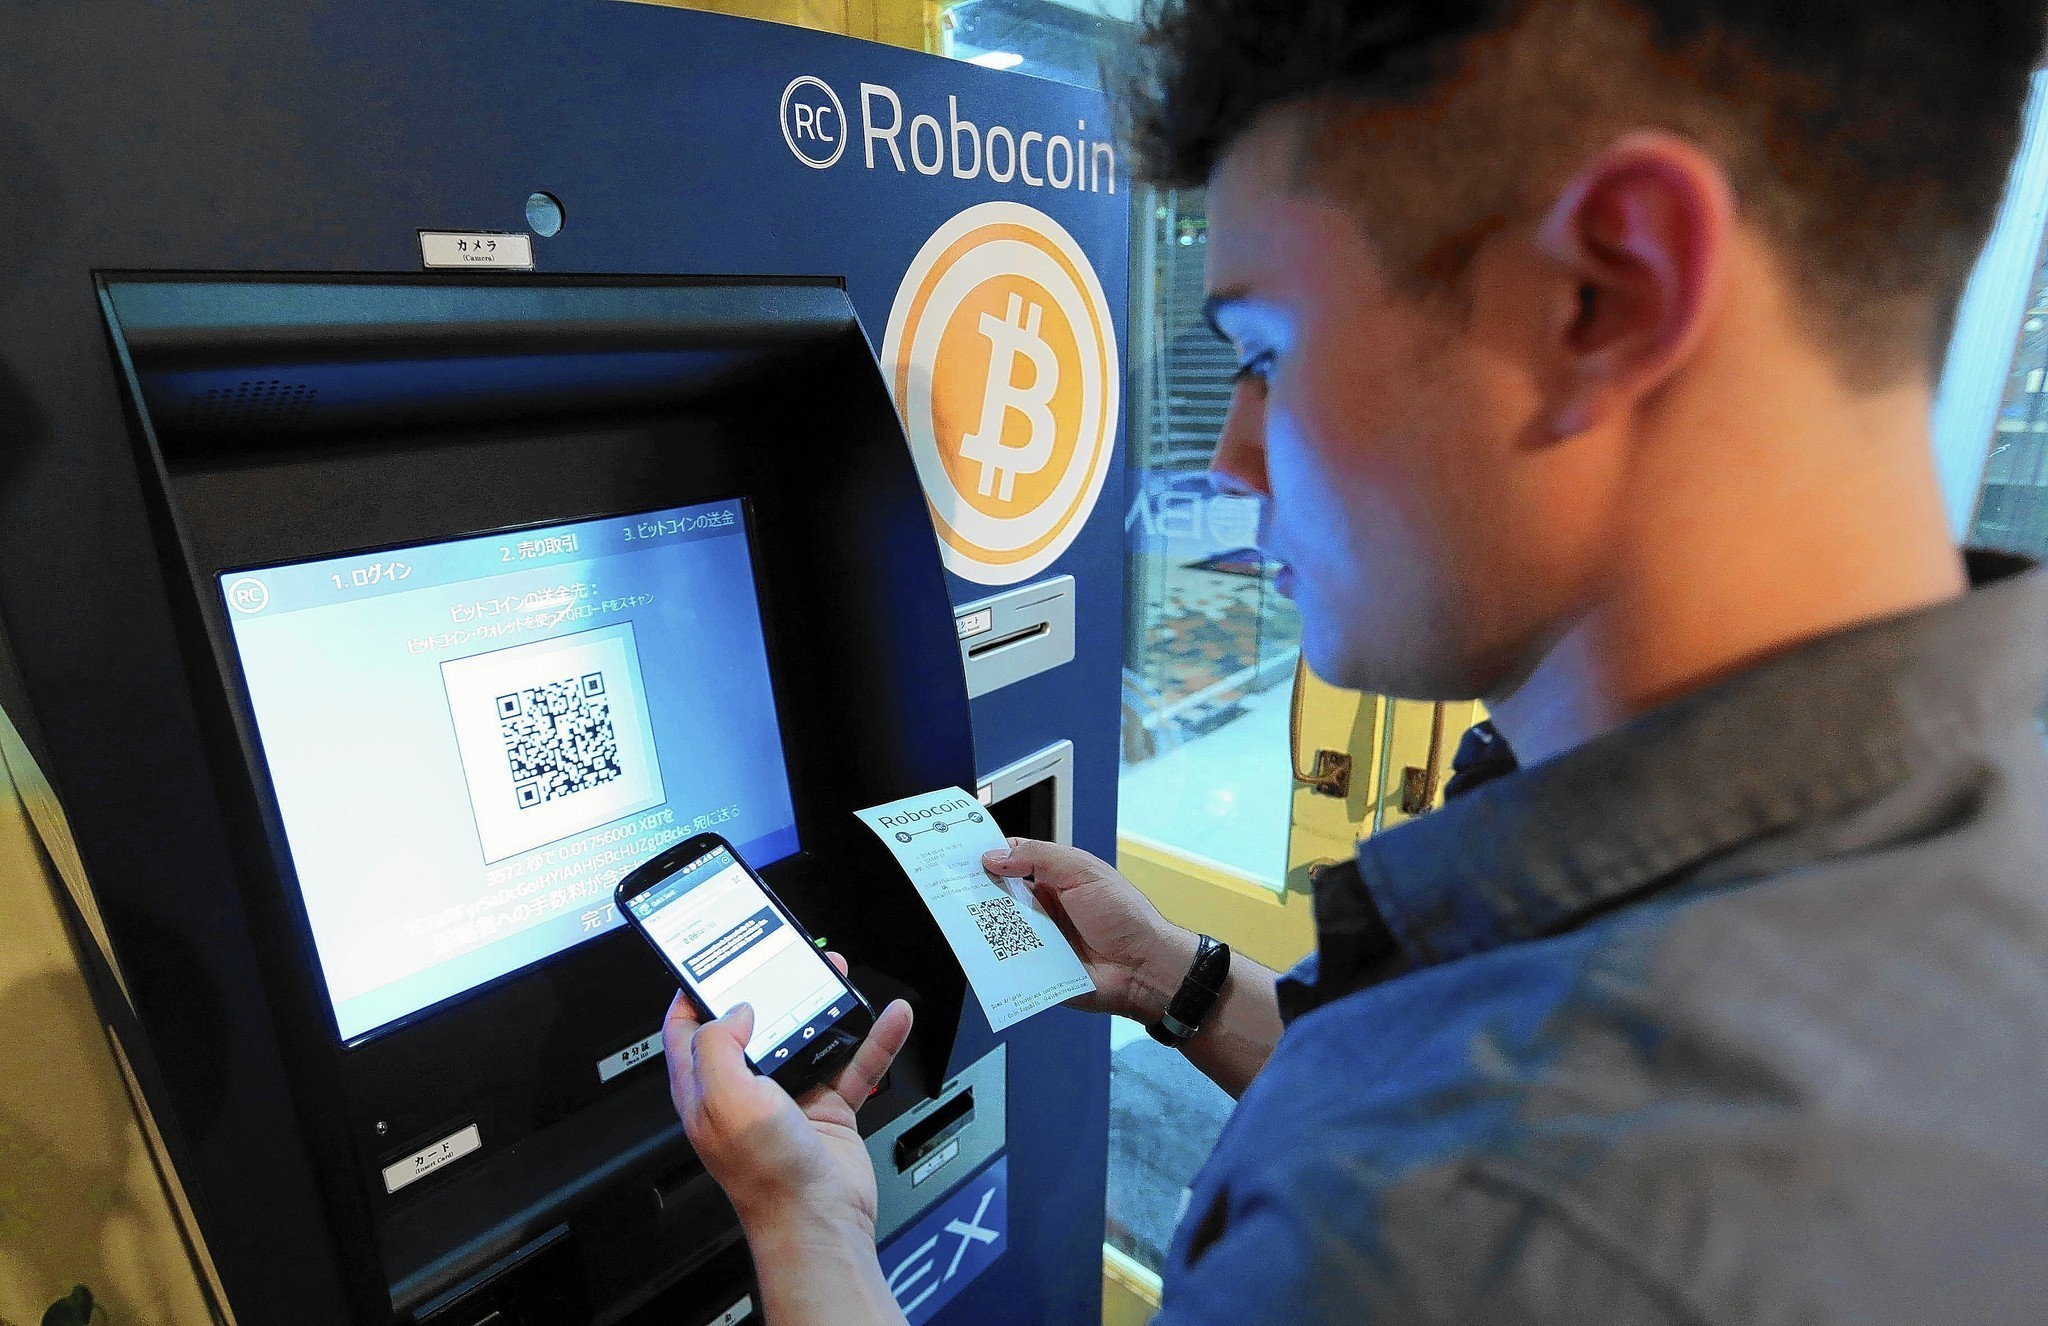 Bitcoin ATM builder takes aim at traditional financial services